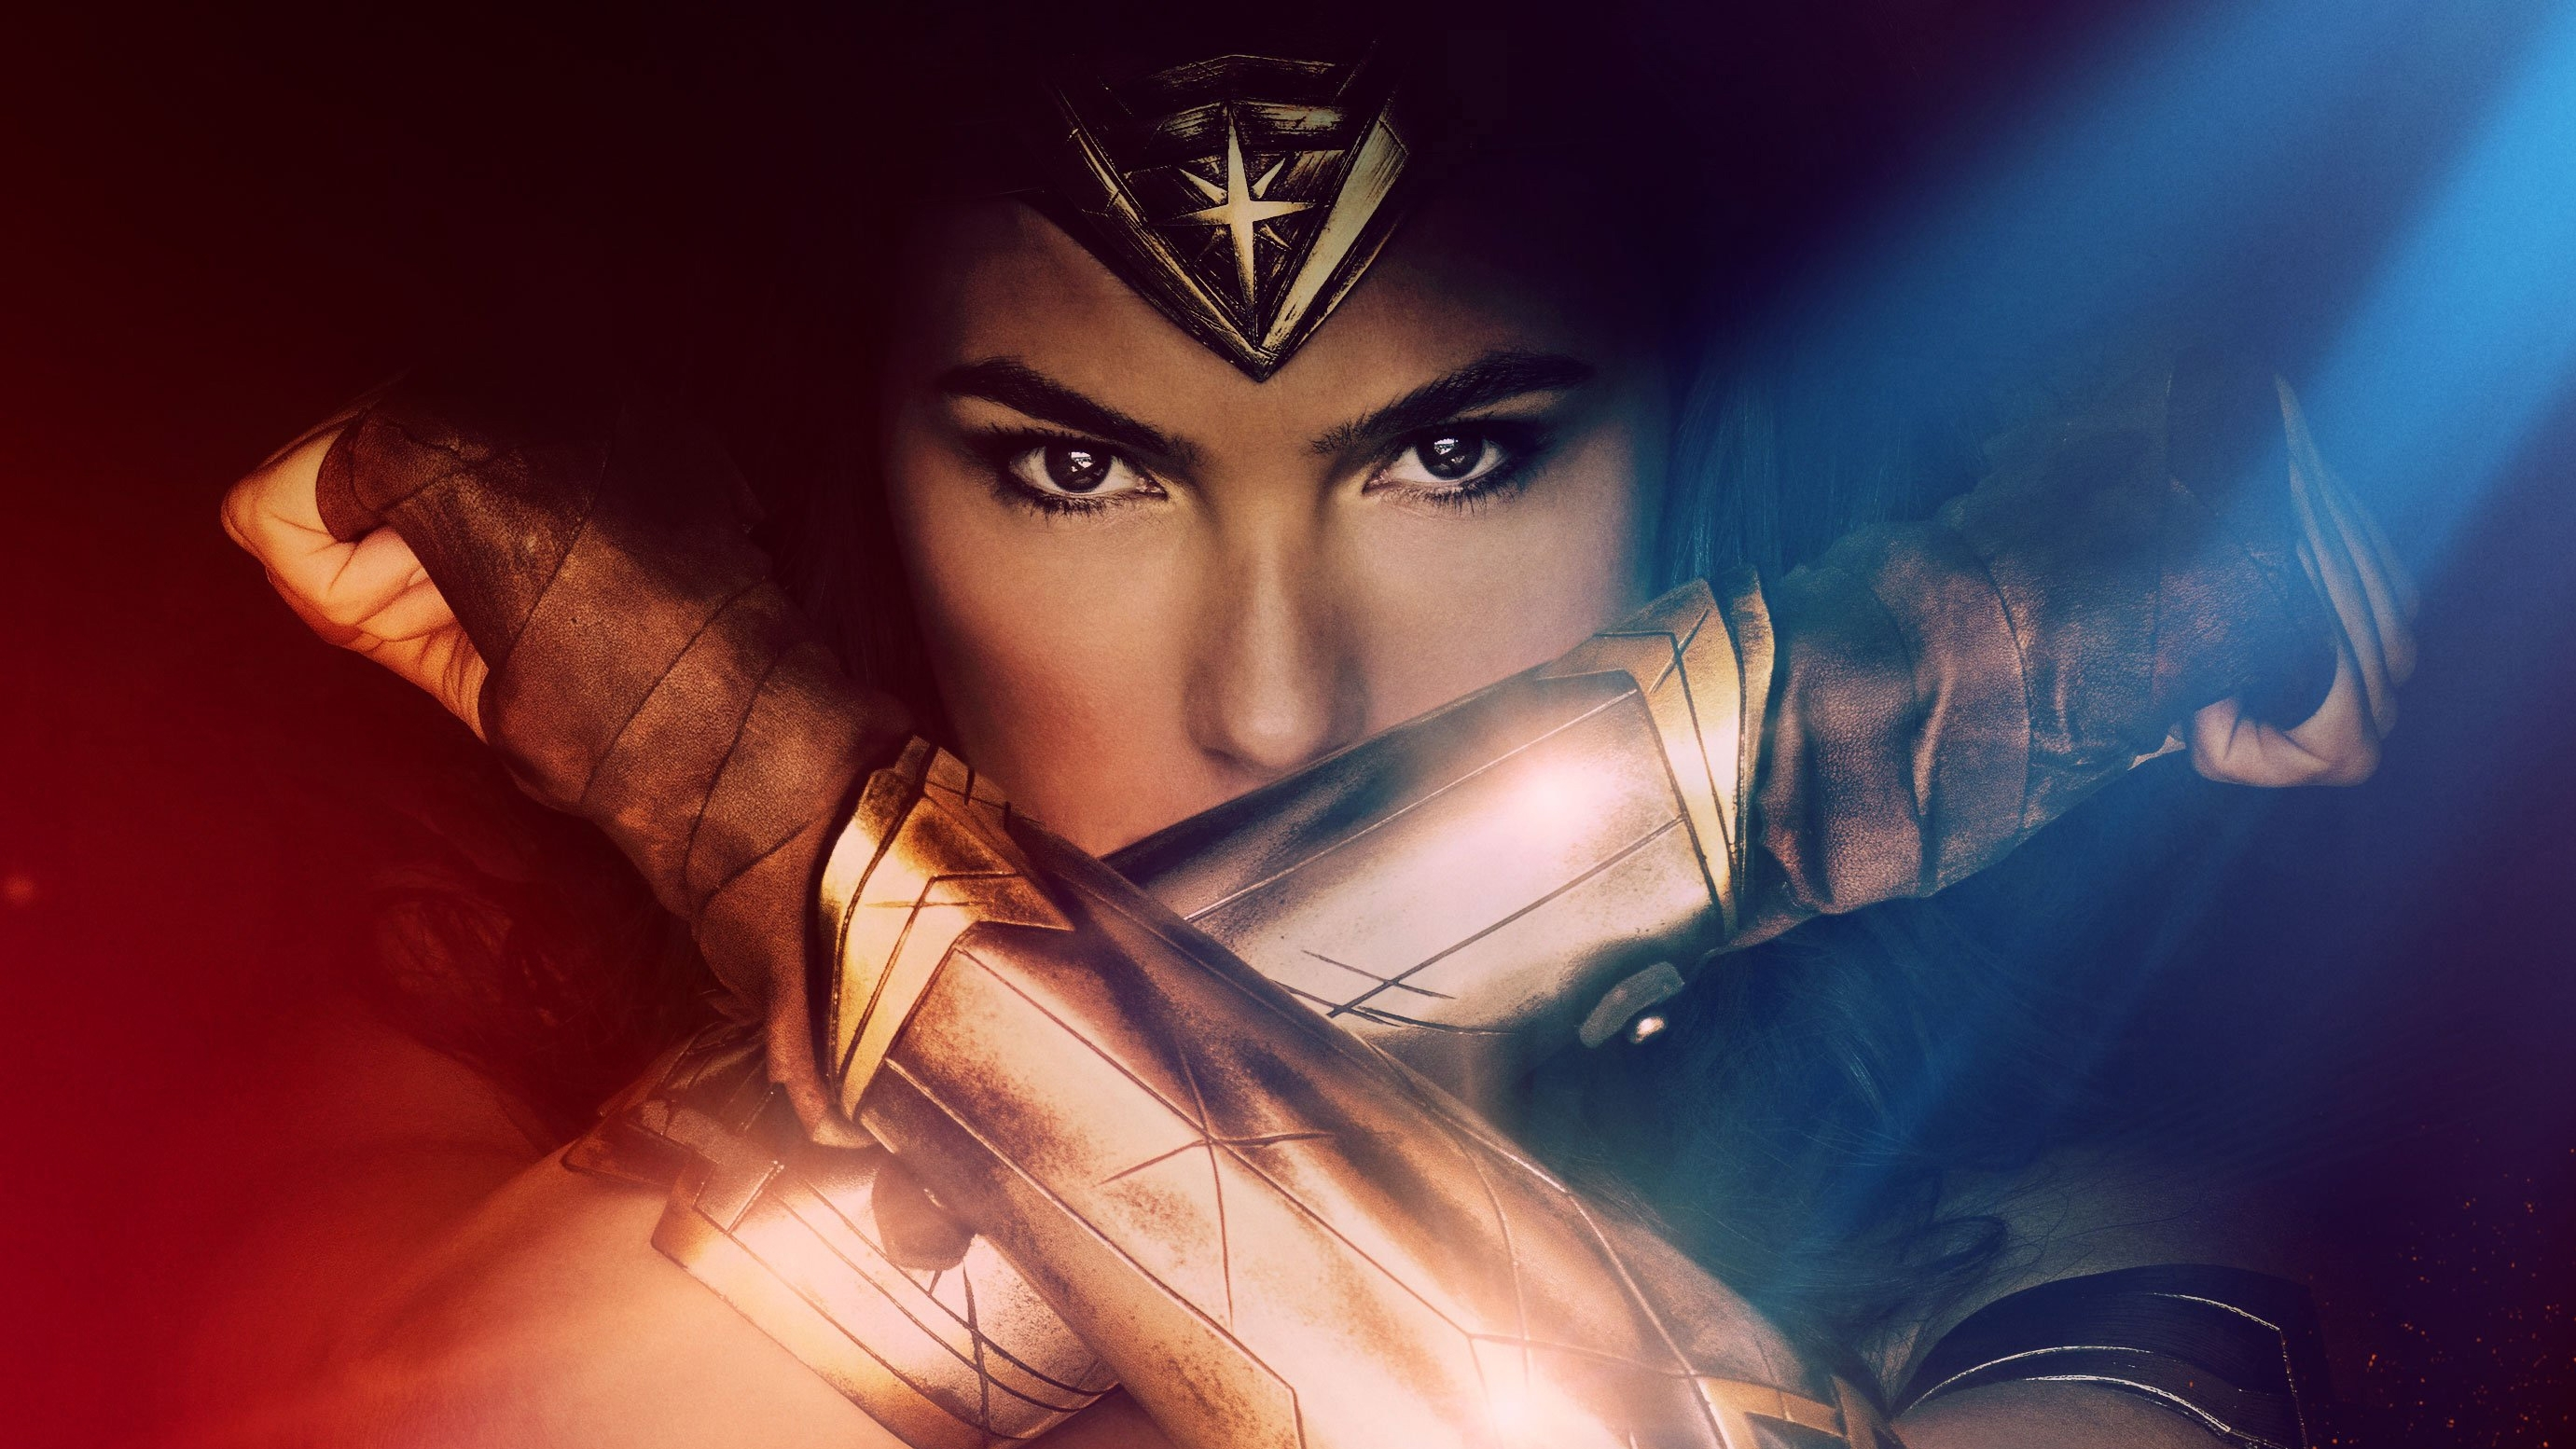 686 wonder woman hd wallpapers | background images - wallpaper abyss